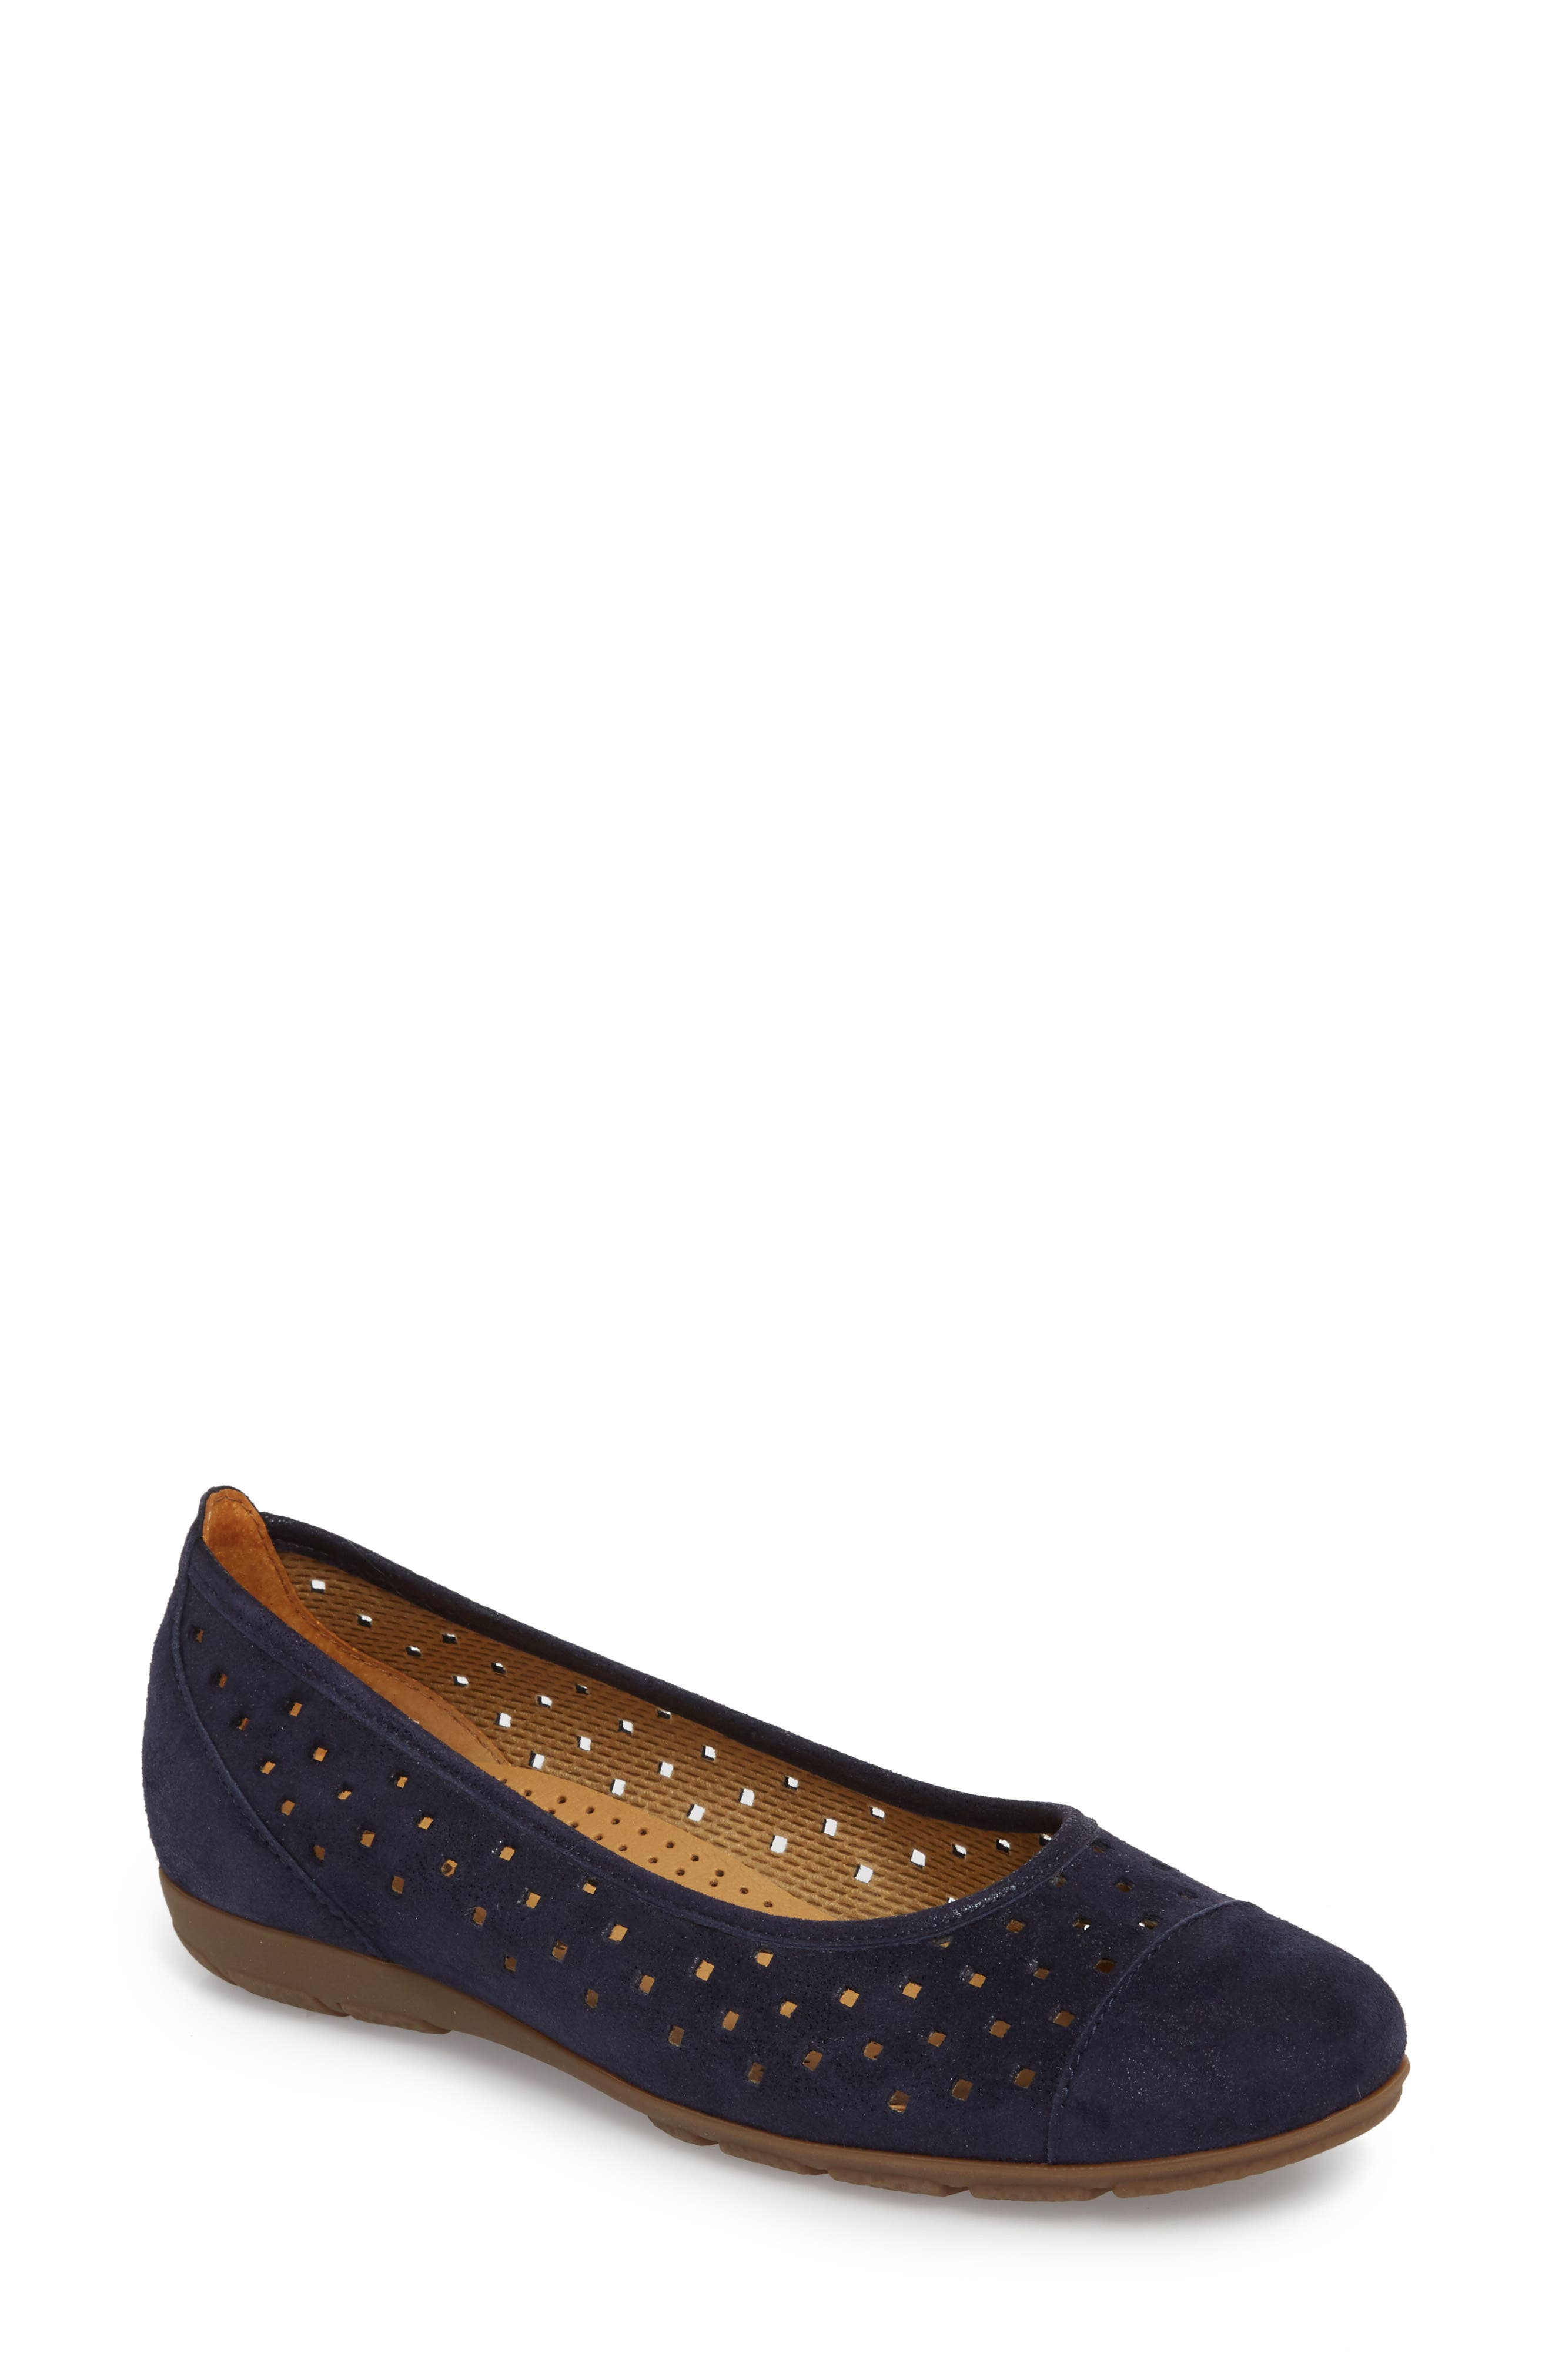 Perforated Ballet Flat,                         Main,                         color, Blue Metallic Leather